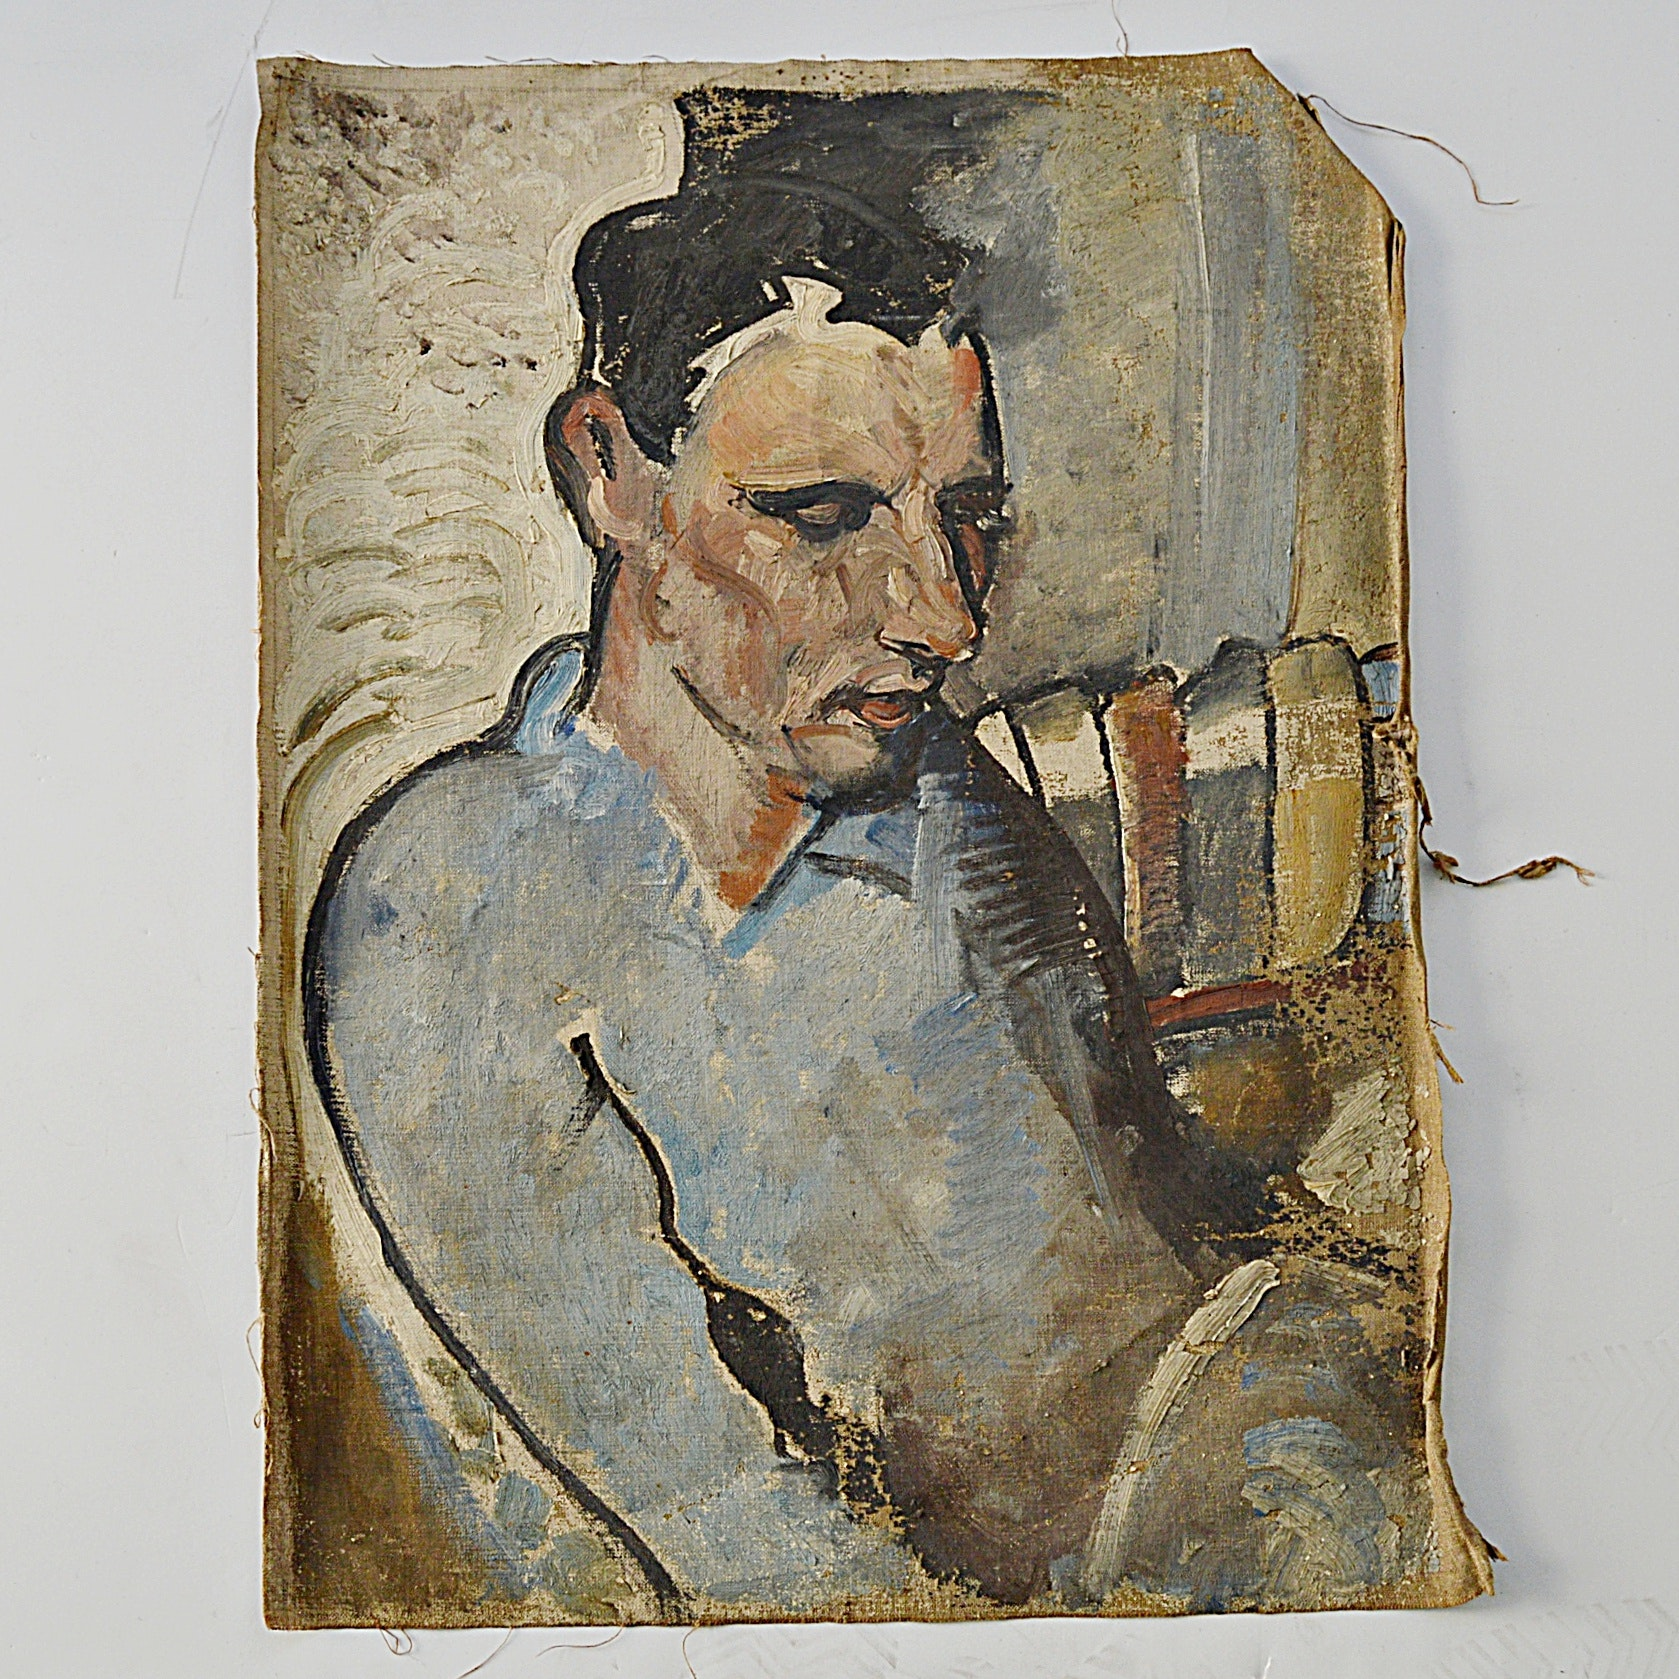 Leighton Smith Abstract Expressionistic Oil on Canvas Portrait